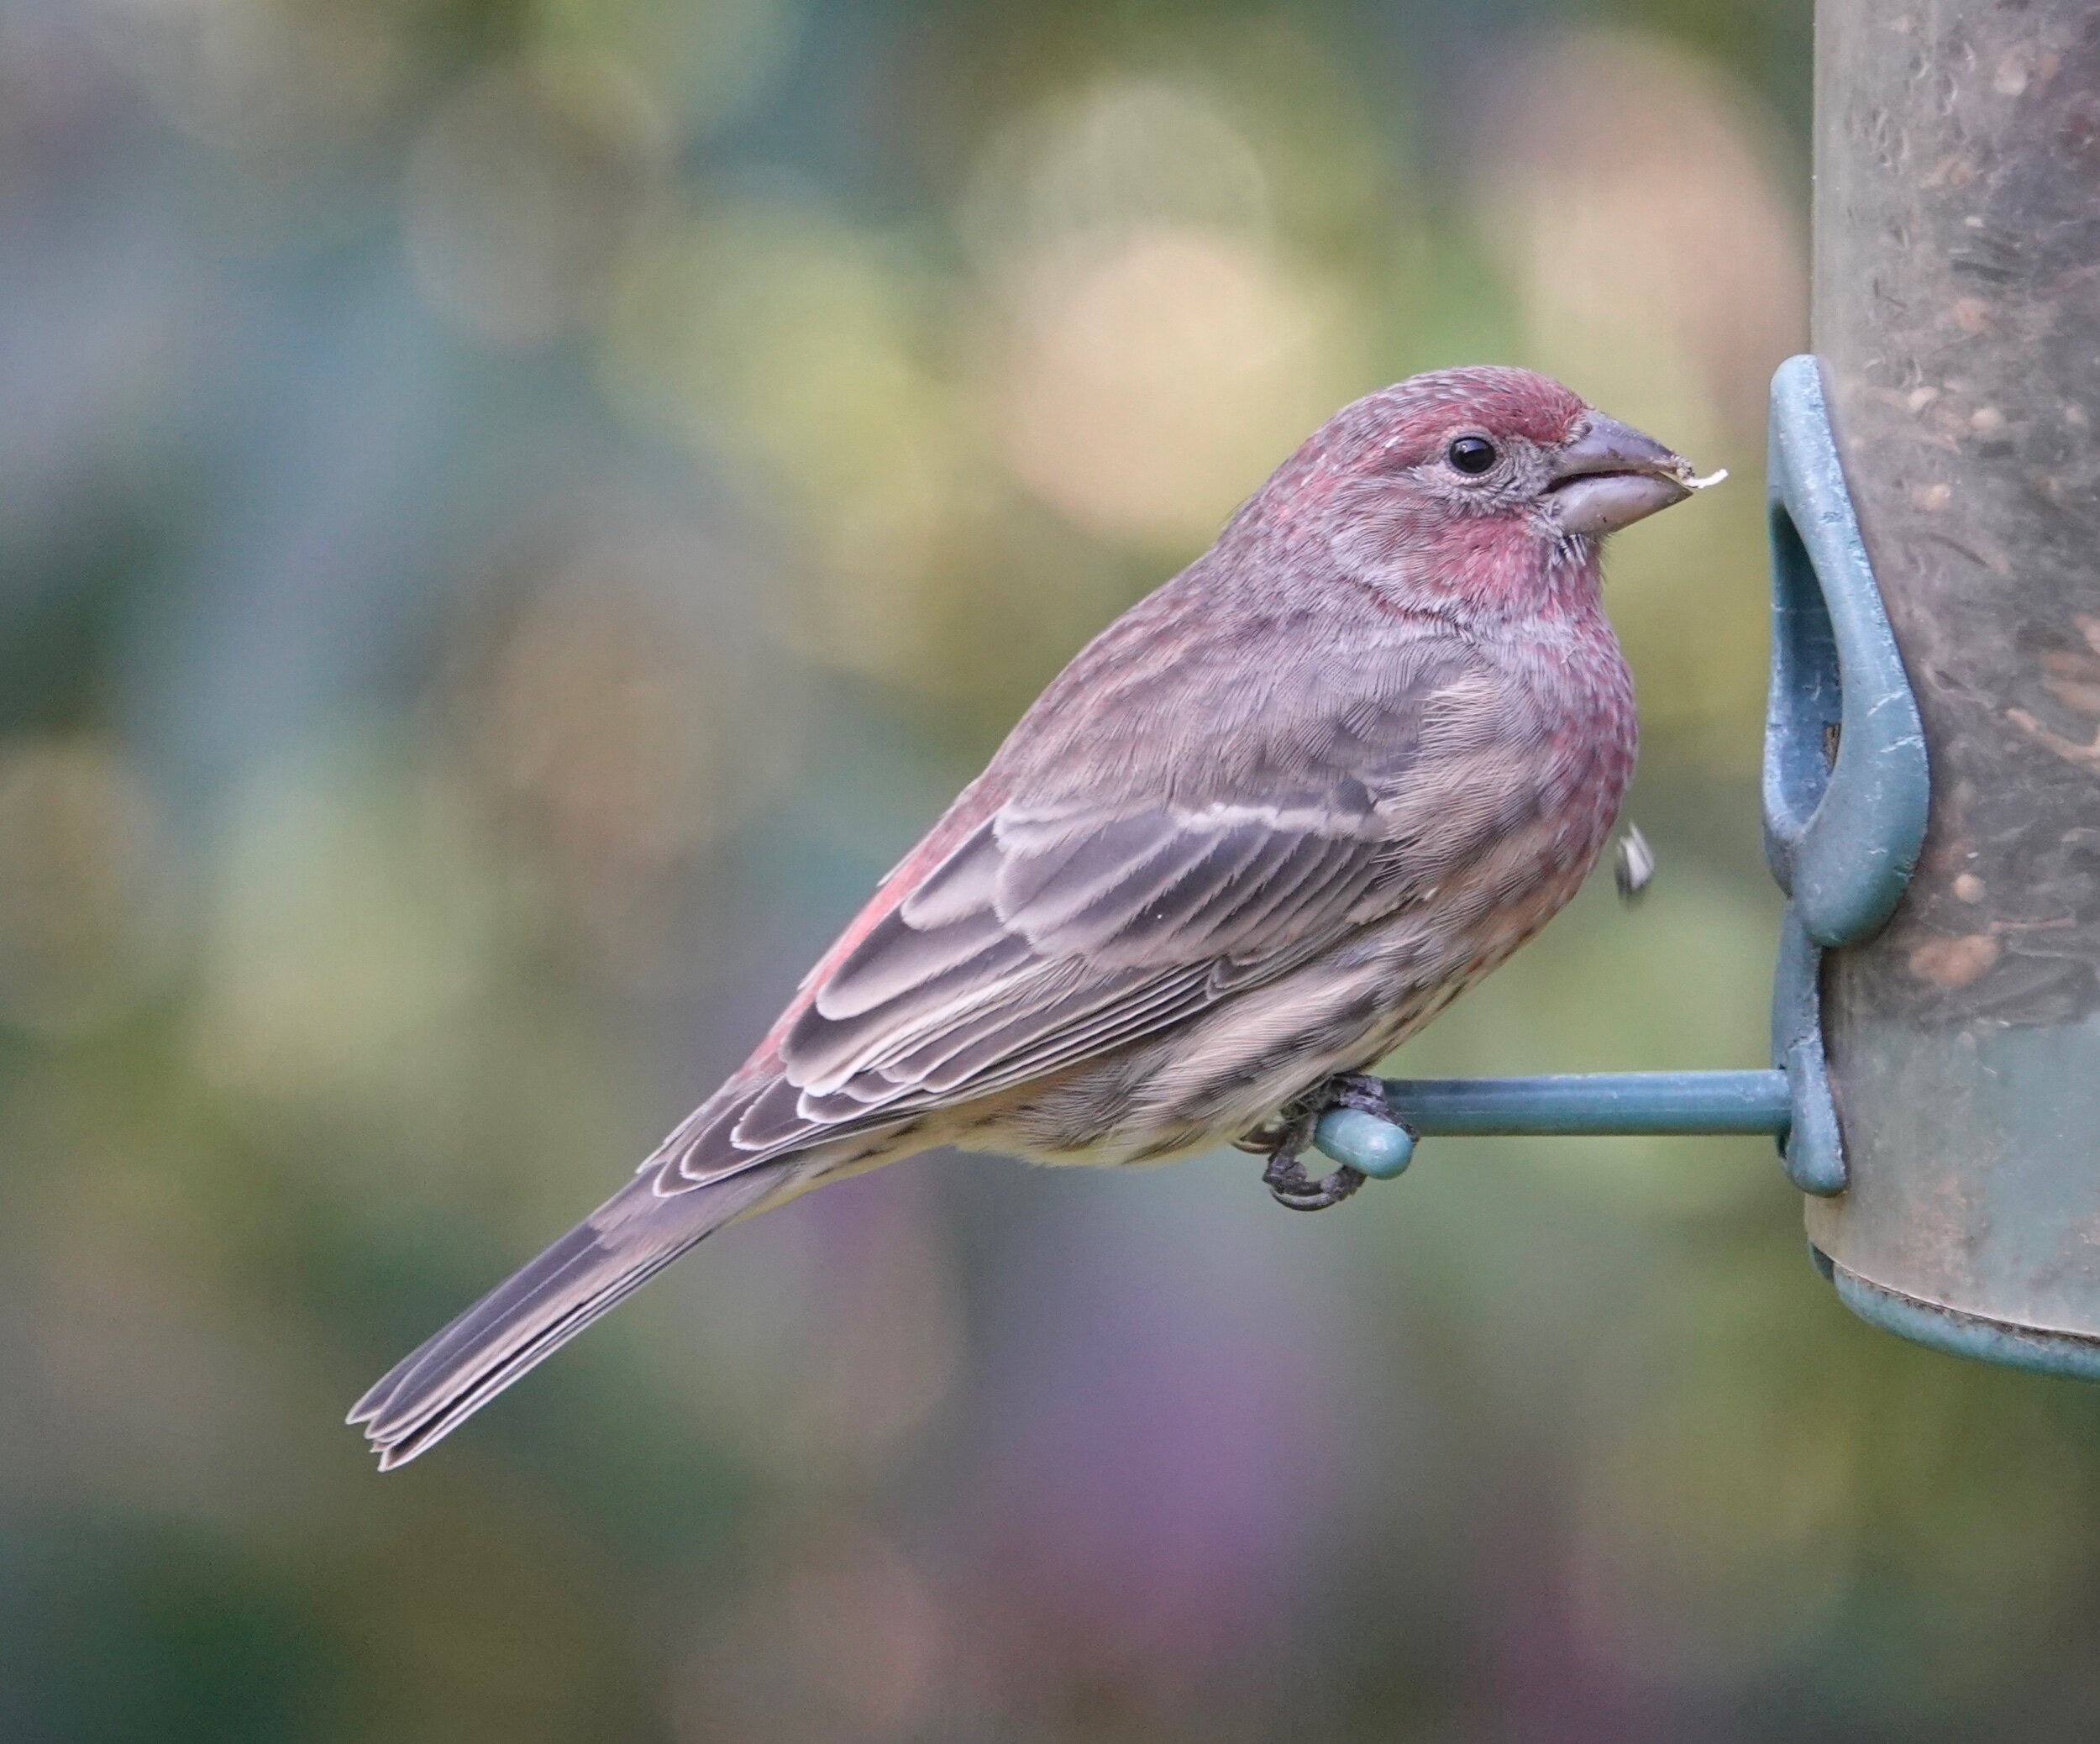 Maybe it's called a house finch because I can watch it from my house. Probably not.